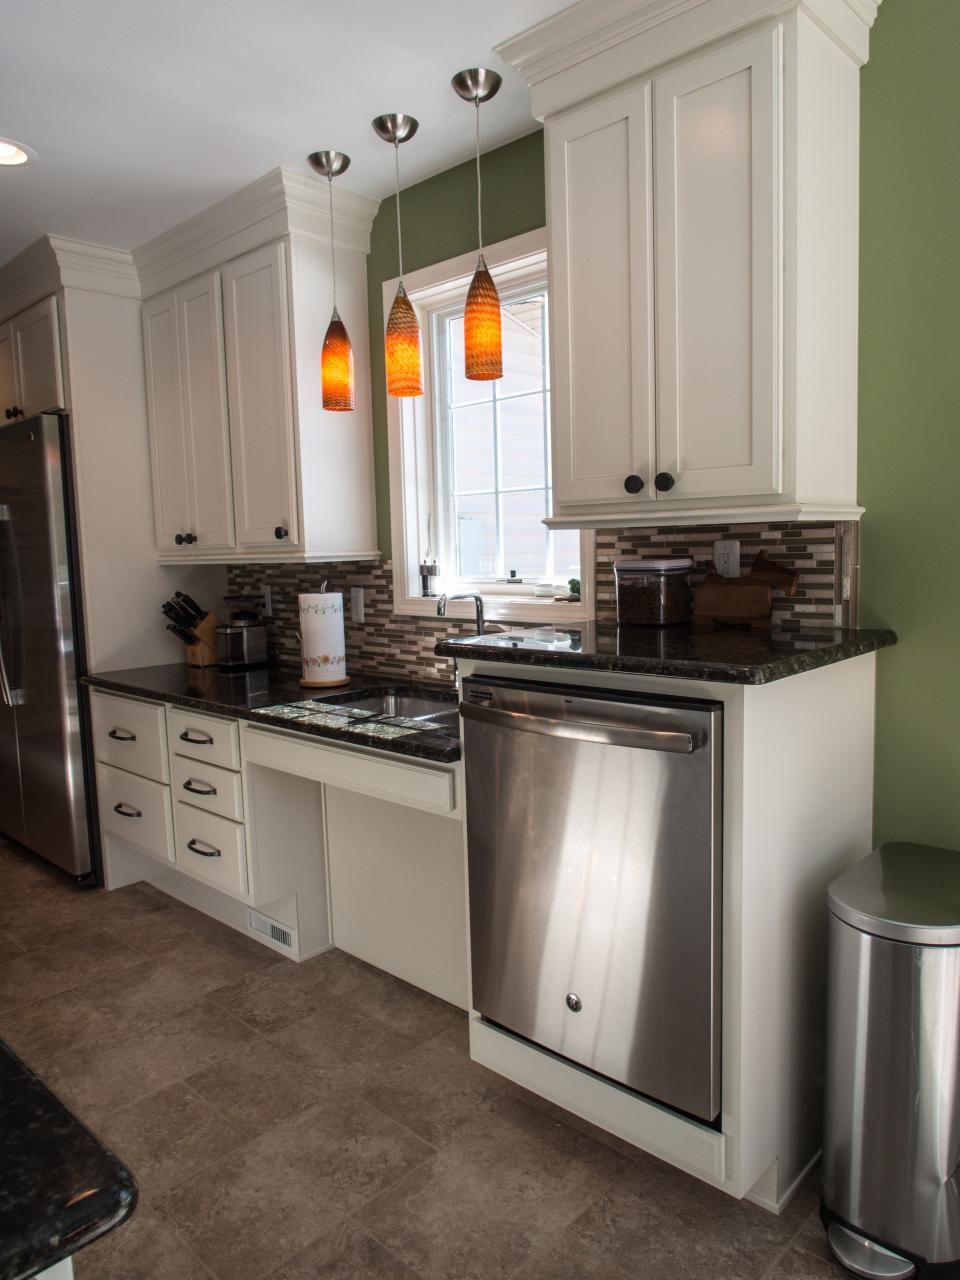 What's trending in kitchen & bath cabinets and accessories ...